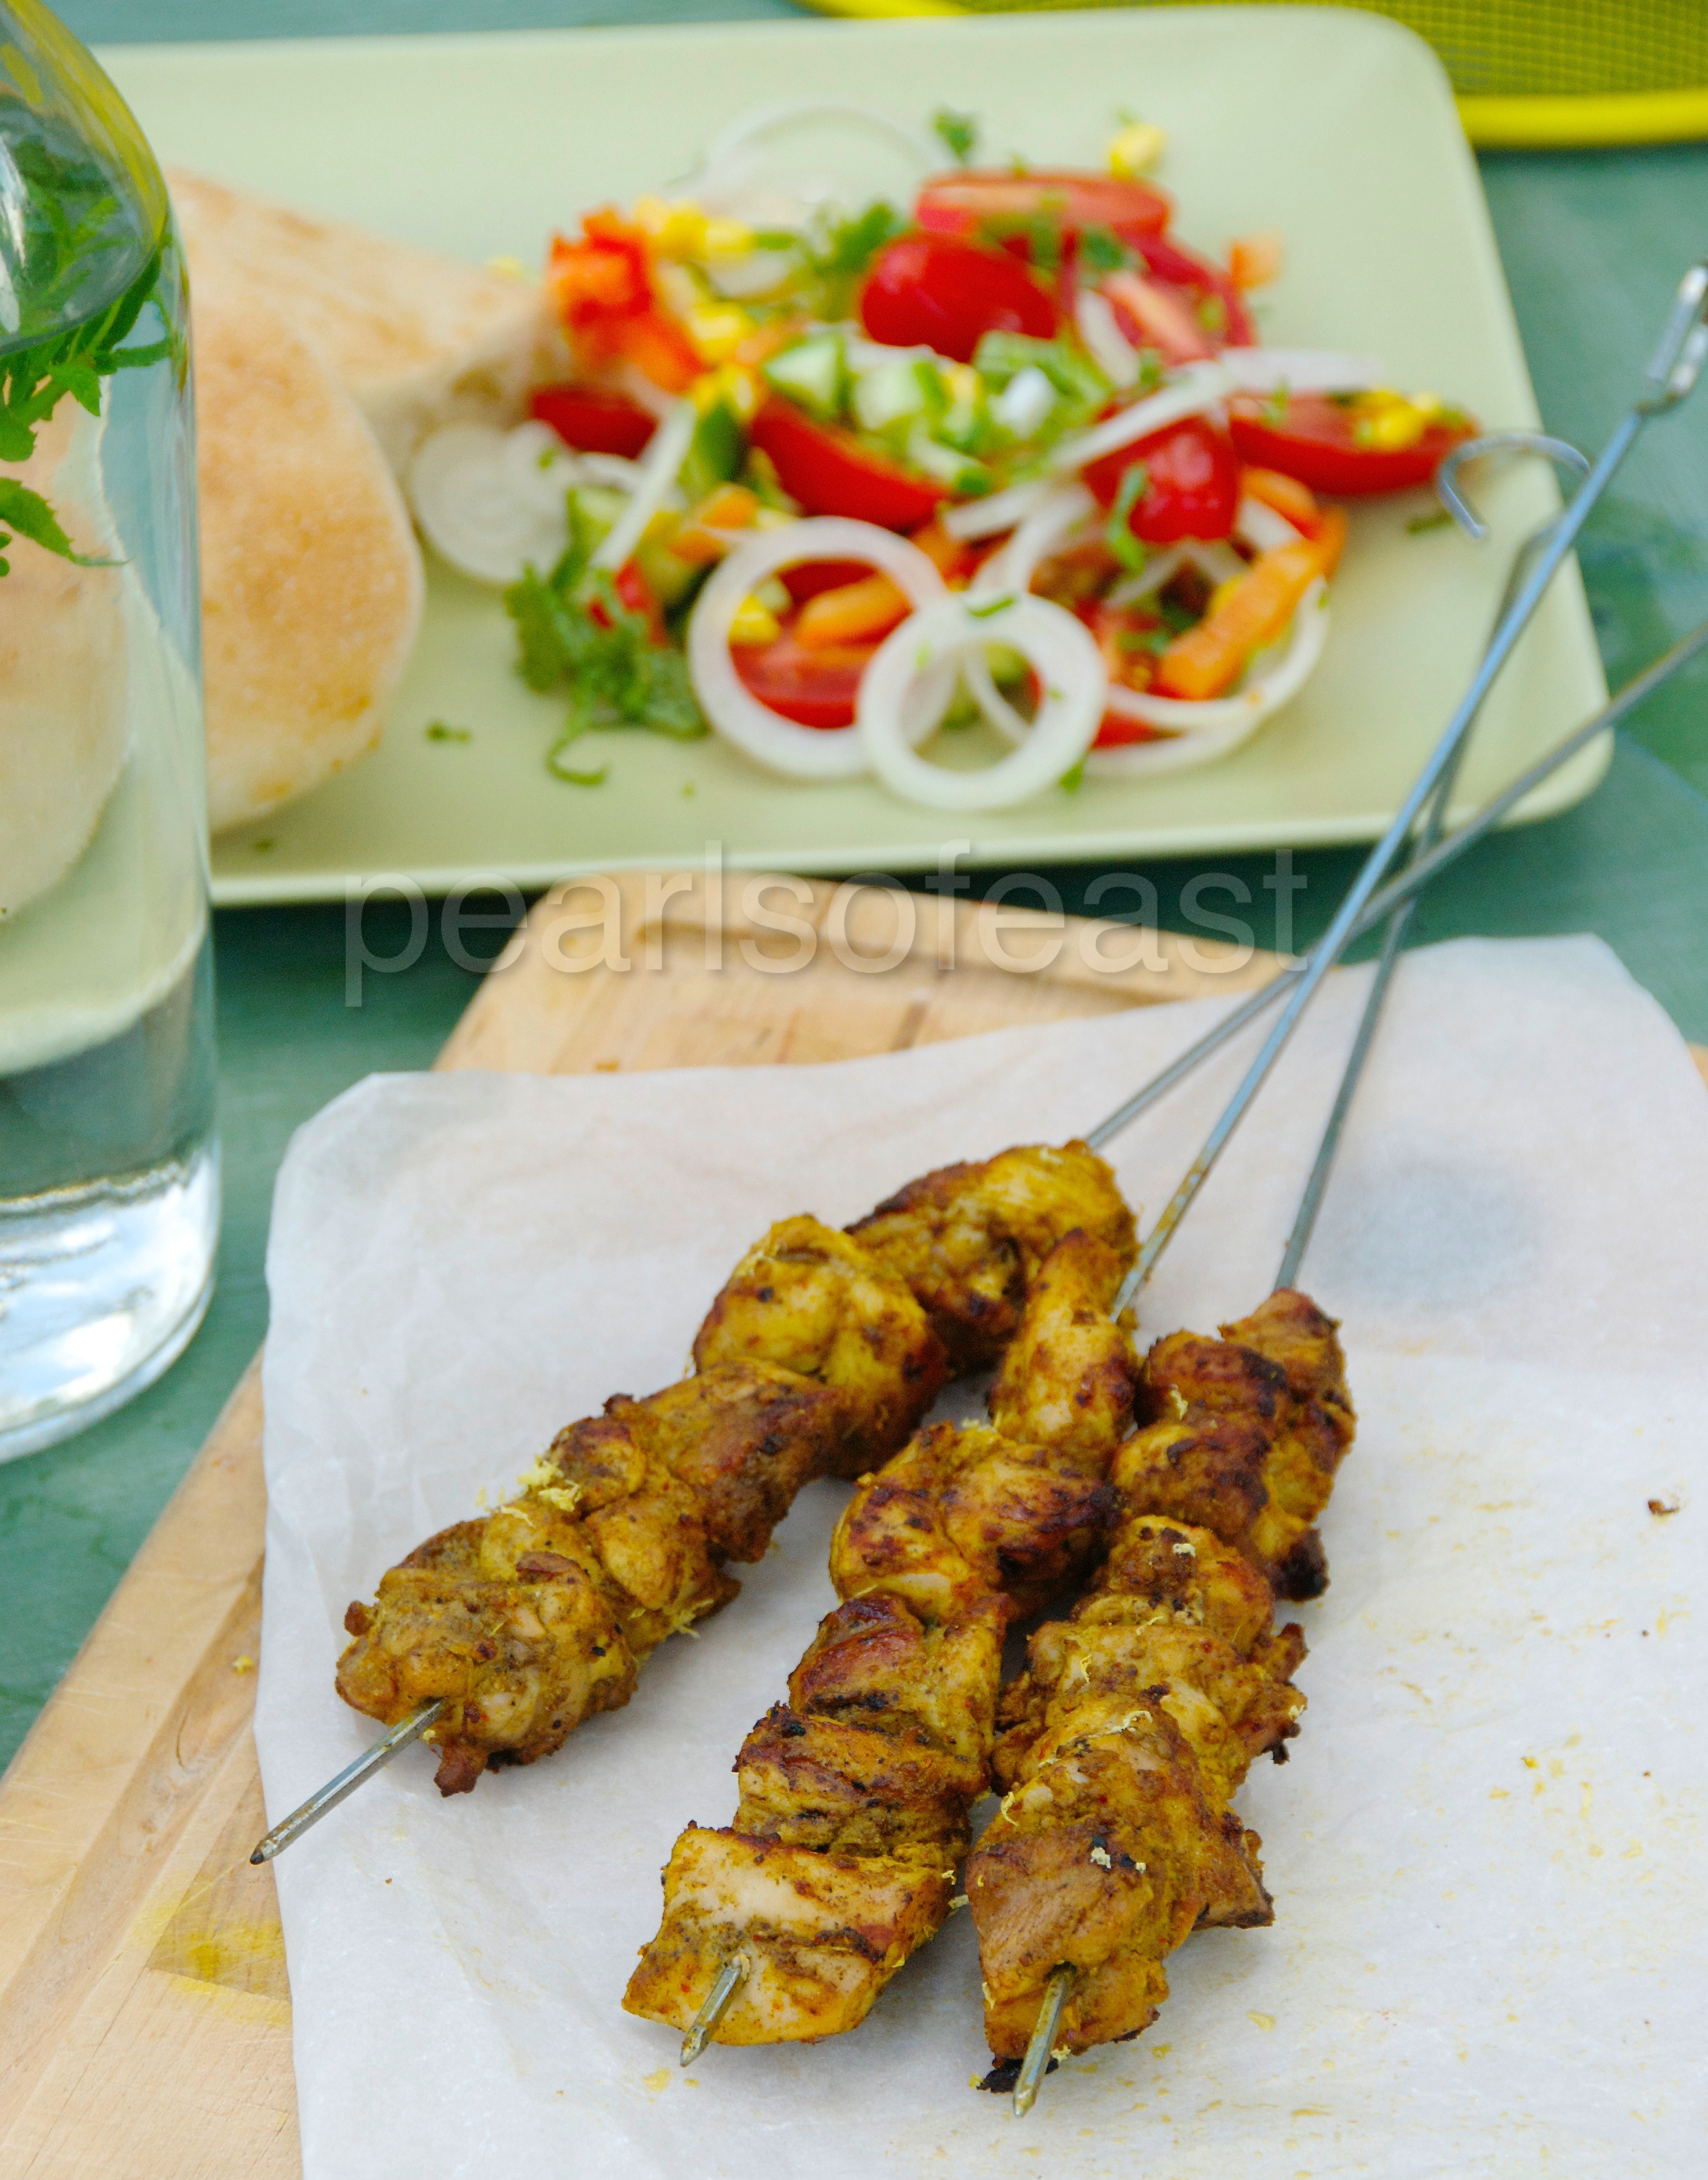 Chicken kababs